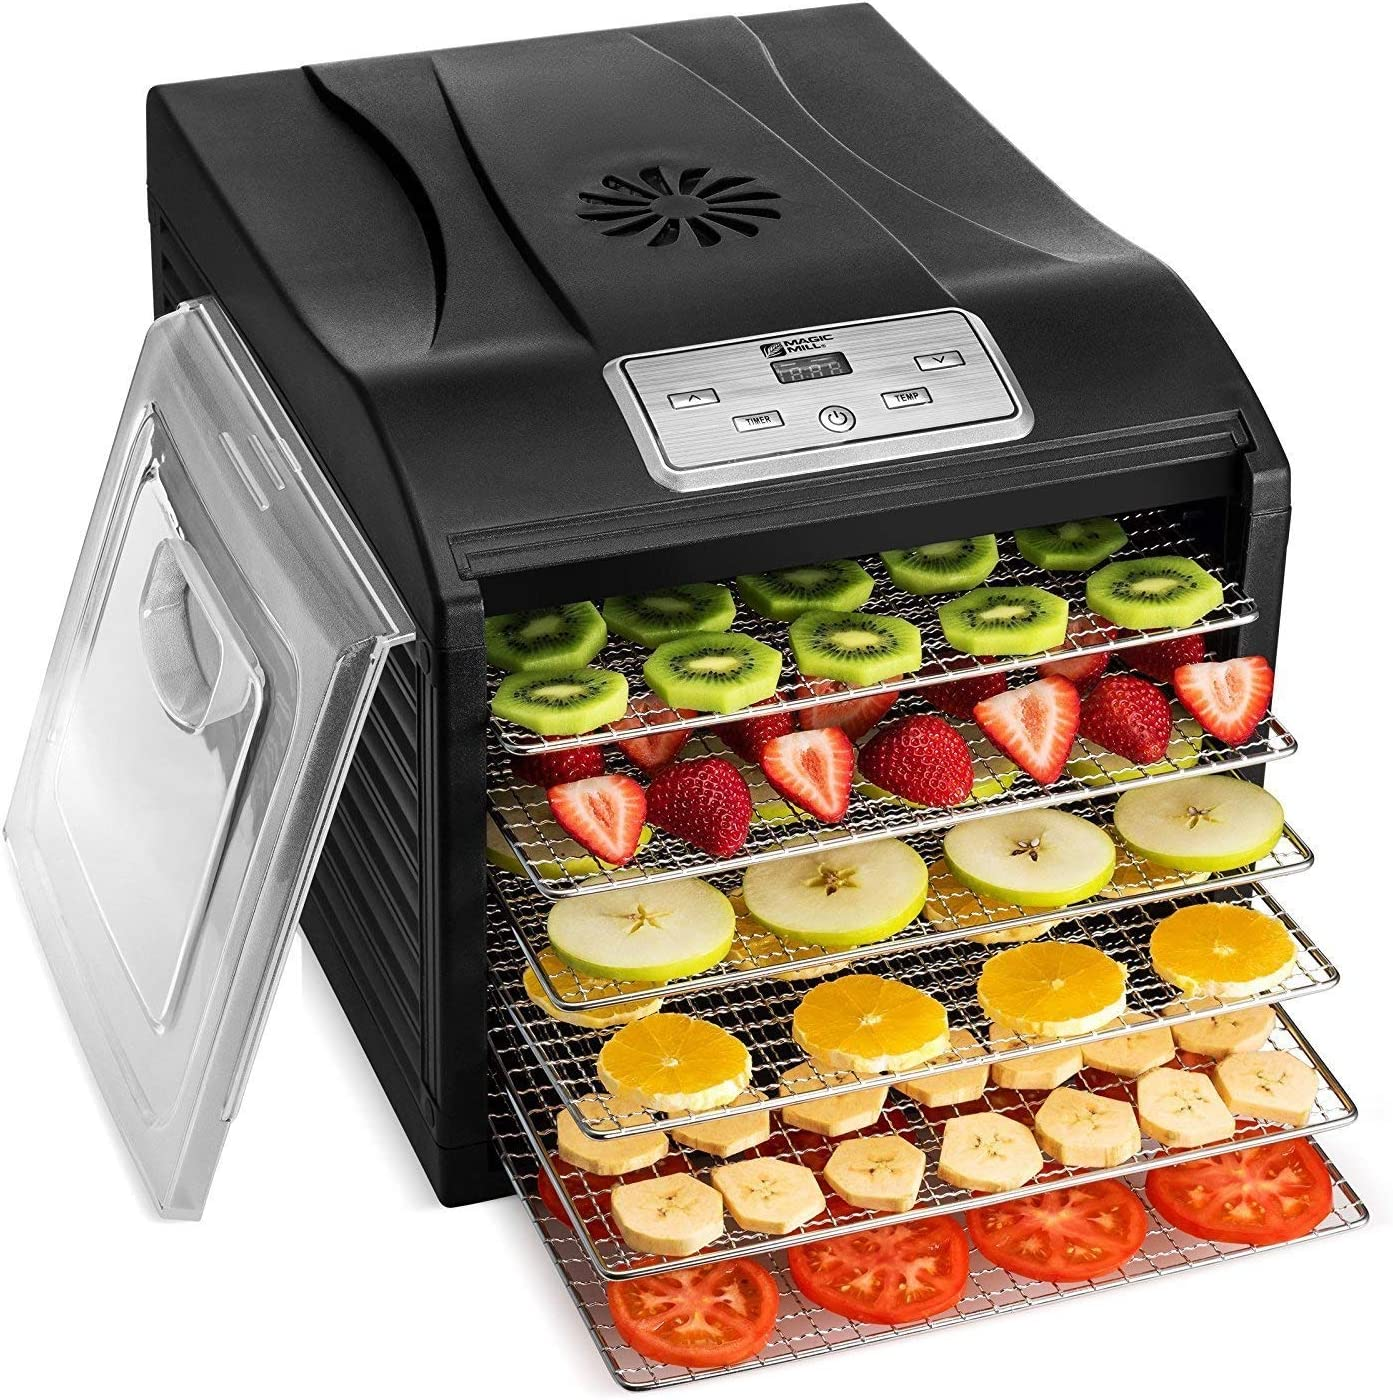 Magic Mill MFD-6100 Magic Mill Professional Dehydrator Machine, 6 Stainless Steel Drying Racks, Multi-Tier Food Preserver, Digital Control Bundle Bonus 2 Fruit Leath, Black (Renewed)